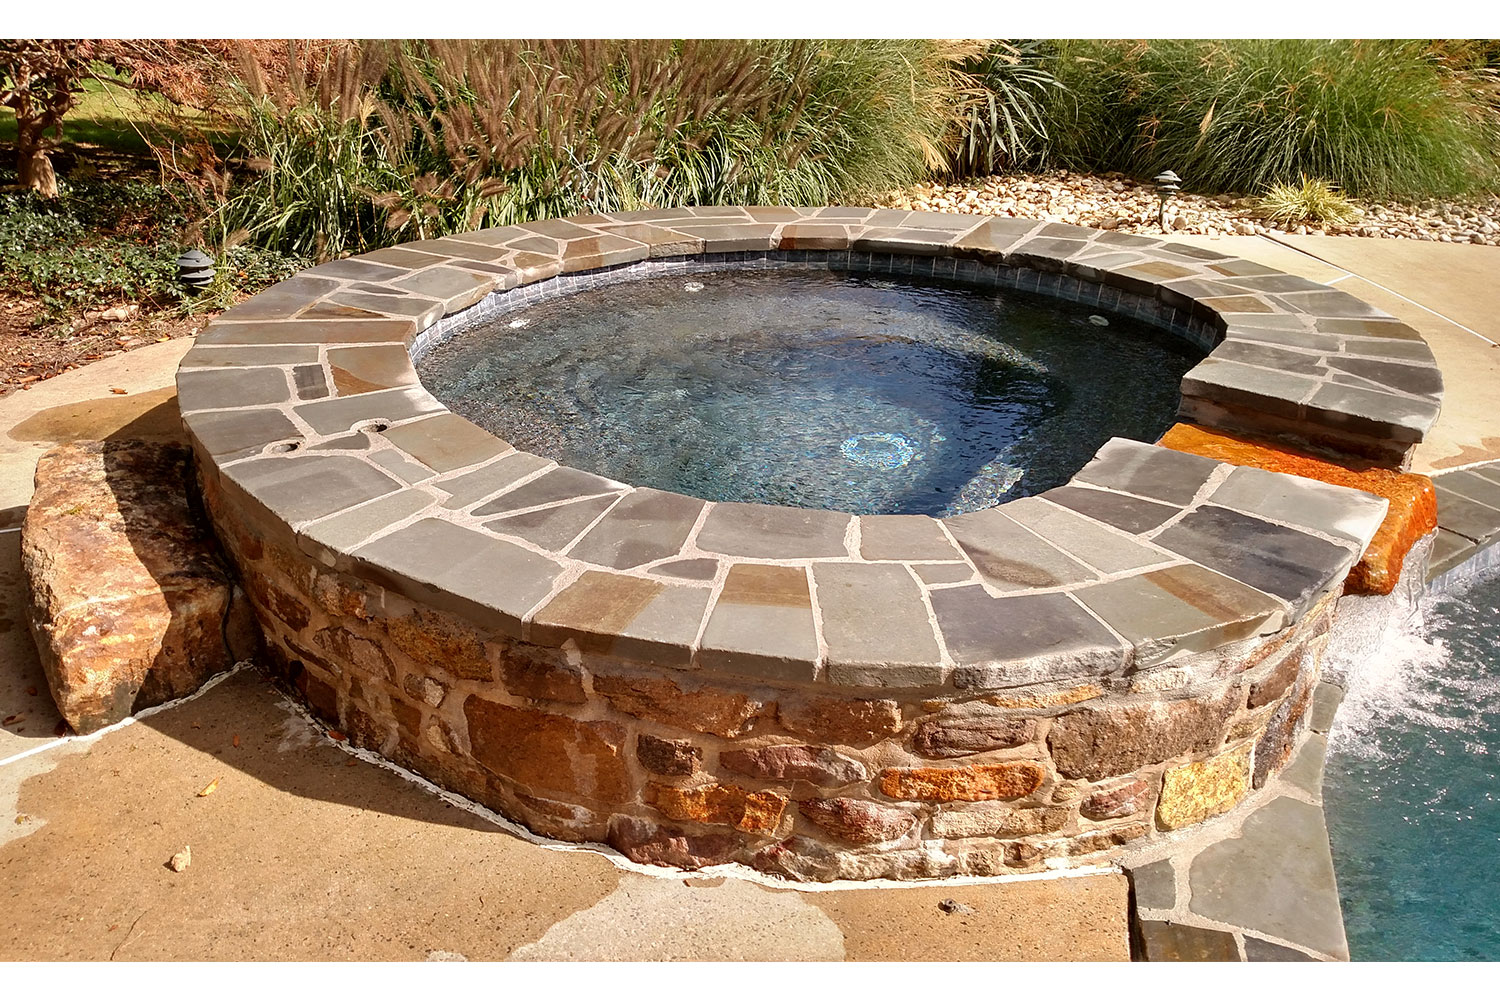 Complete Renovation, 2018: Raised Spa Renovated with Tumbled Bluestone Coping, New Ceramic Tile and Pebble Tec Interior Finish, New Hope, PA